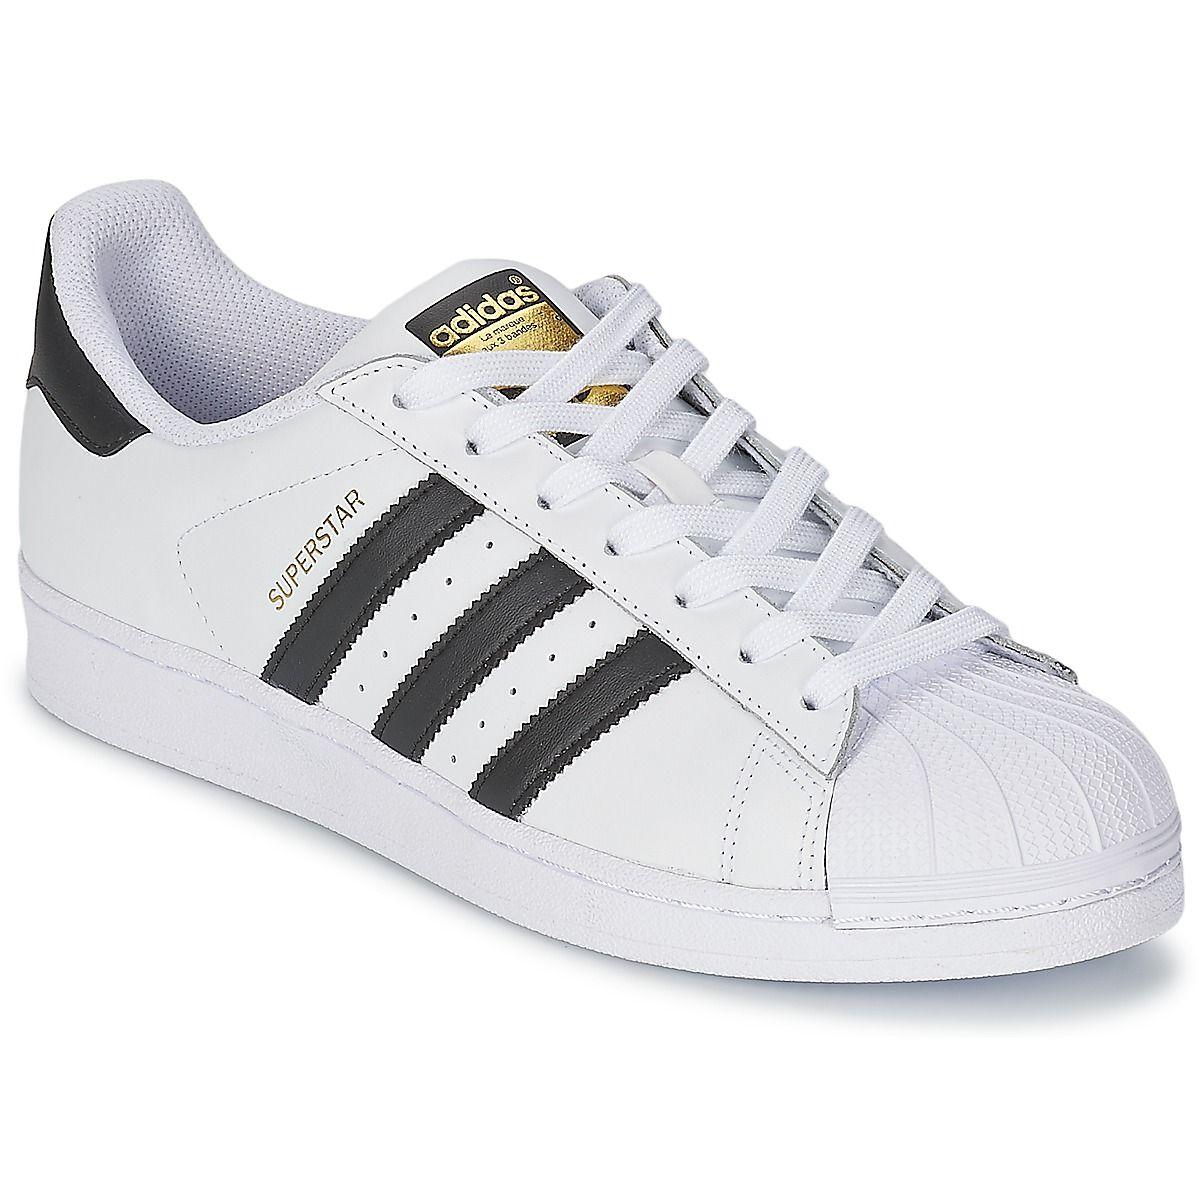 Top Ventes Unisexe Adidas Originals Superstar Chaussure De